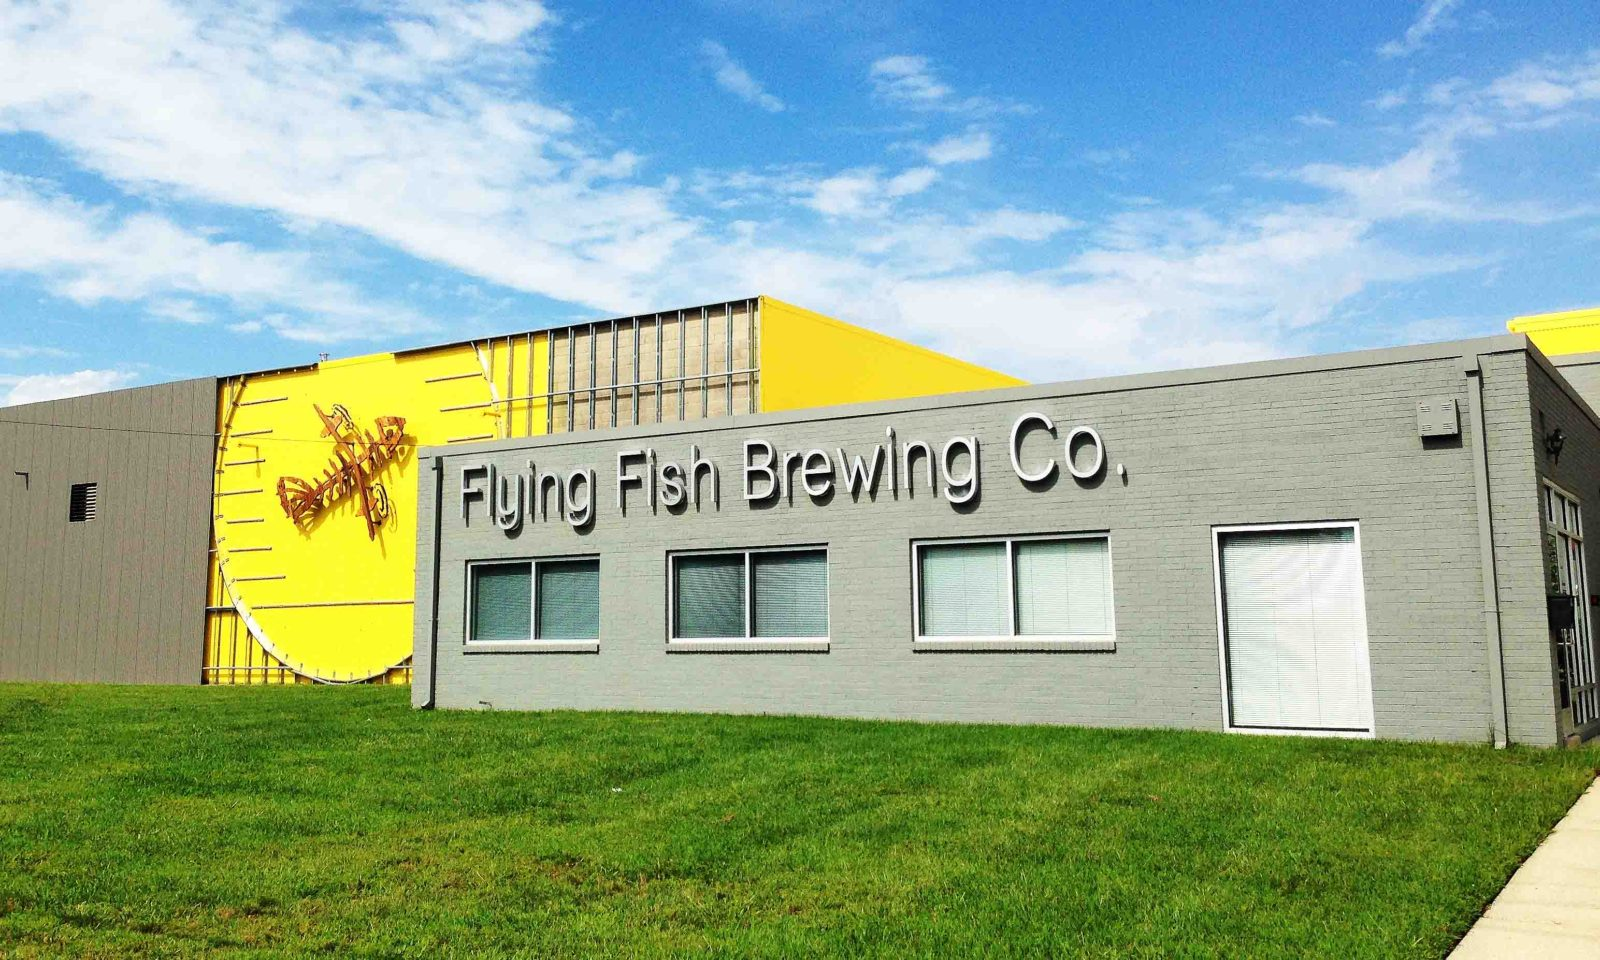 165. Flying Fish Brewing, Somerdale NJ 2013